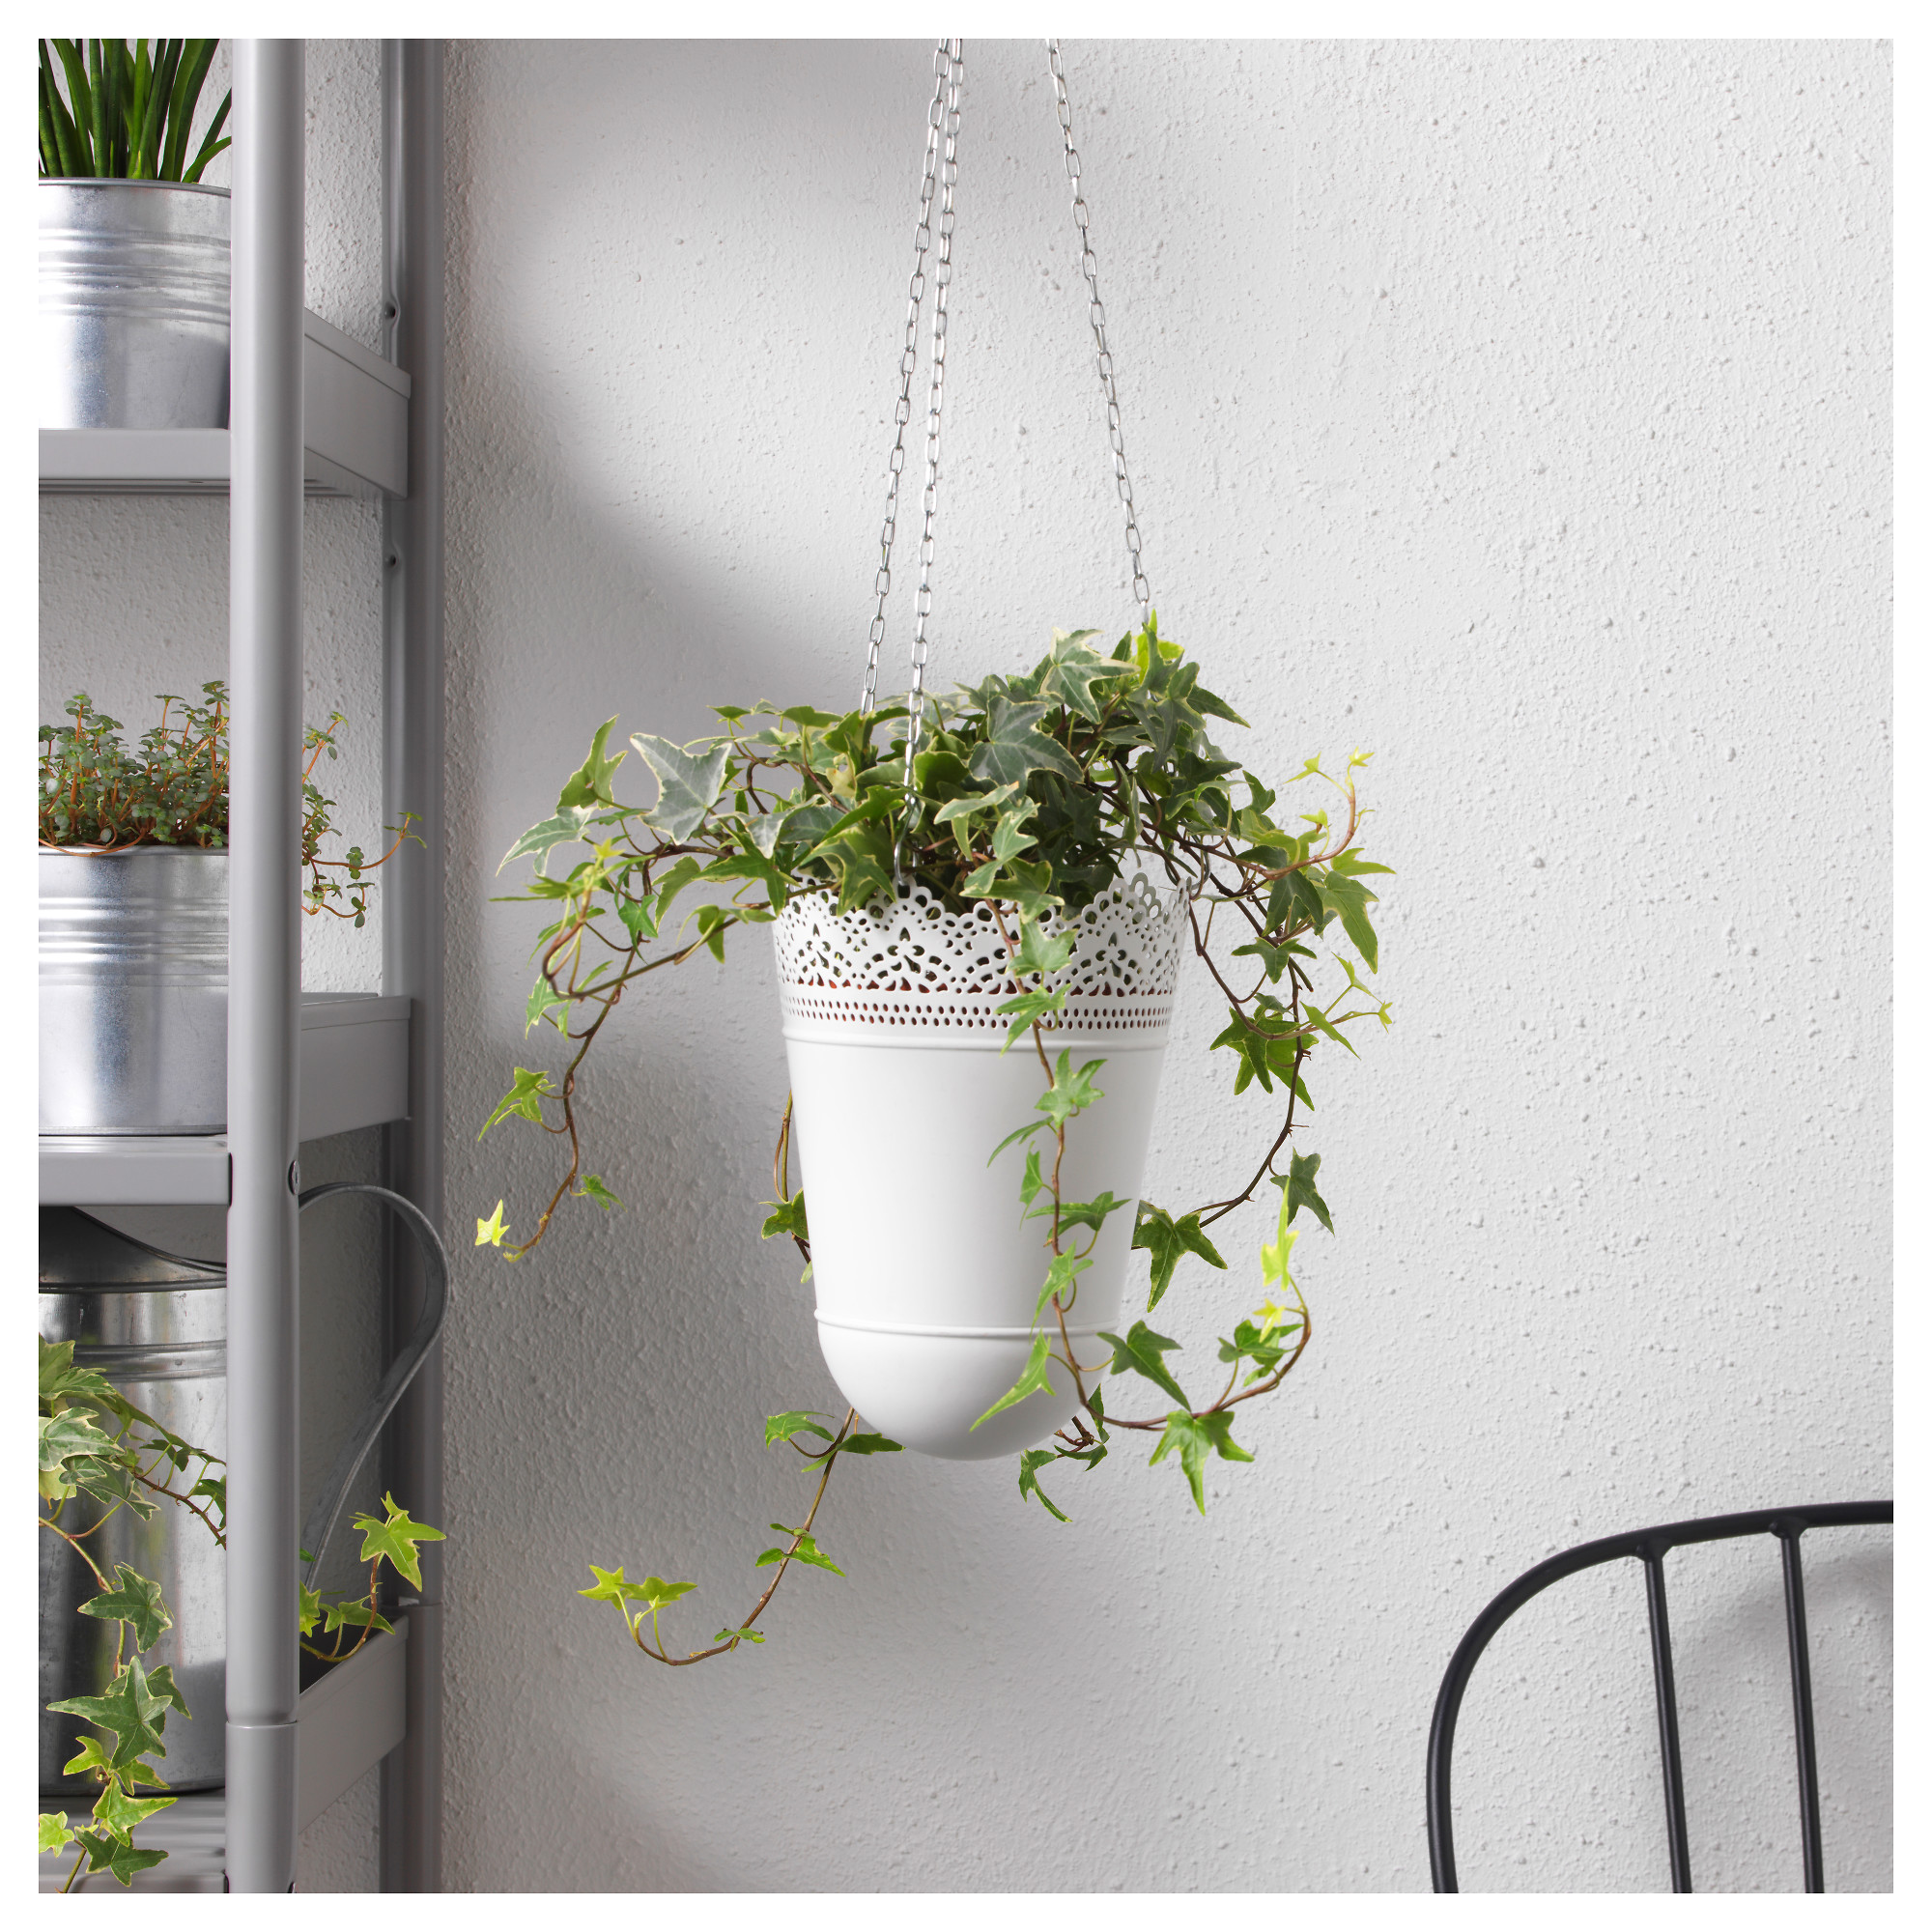 accroche plante mural interesting etape with accroche plante mural great sac dchets verts. Black Bedroom Furniture Sets. Home Design Ideas